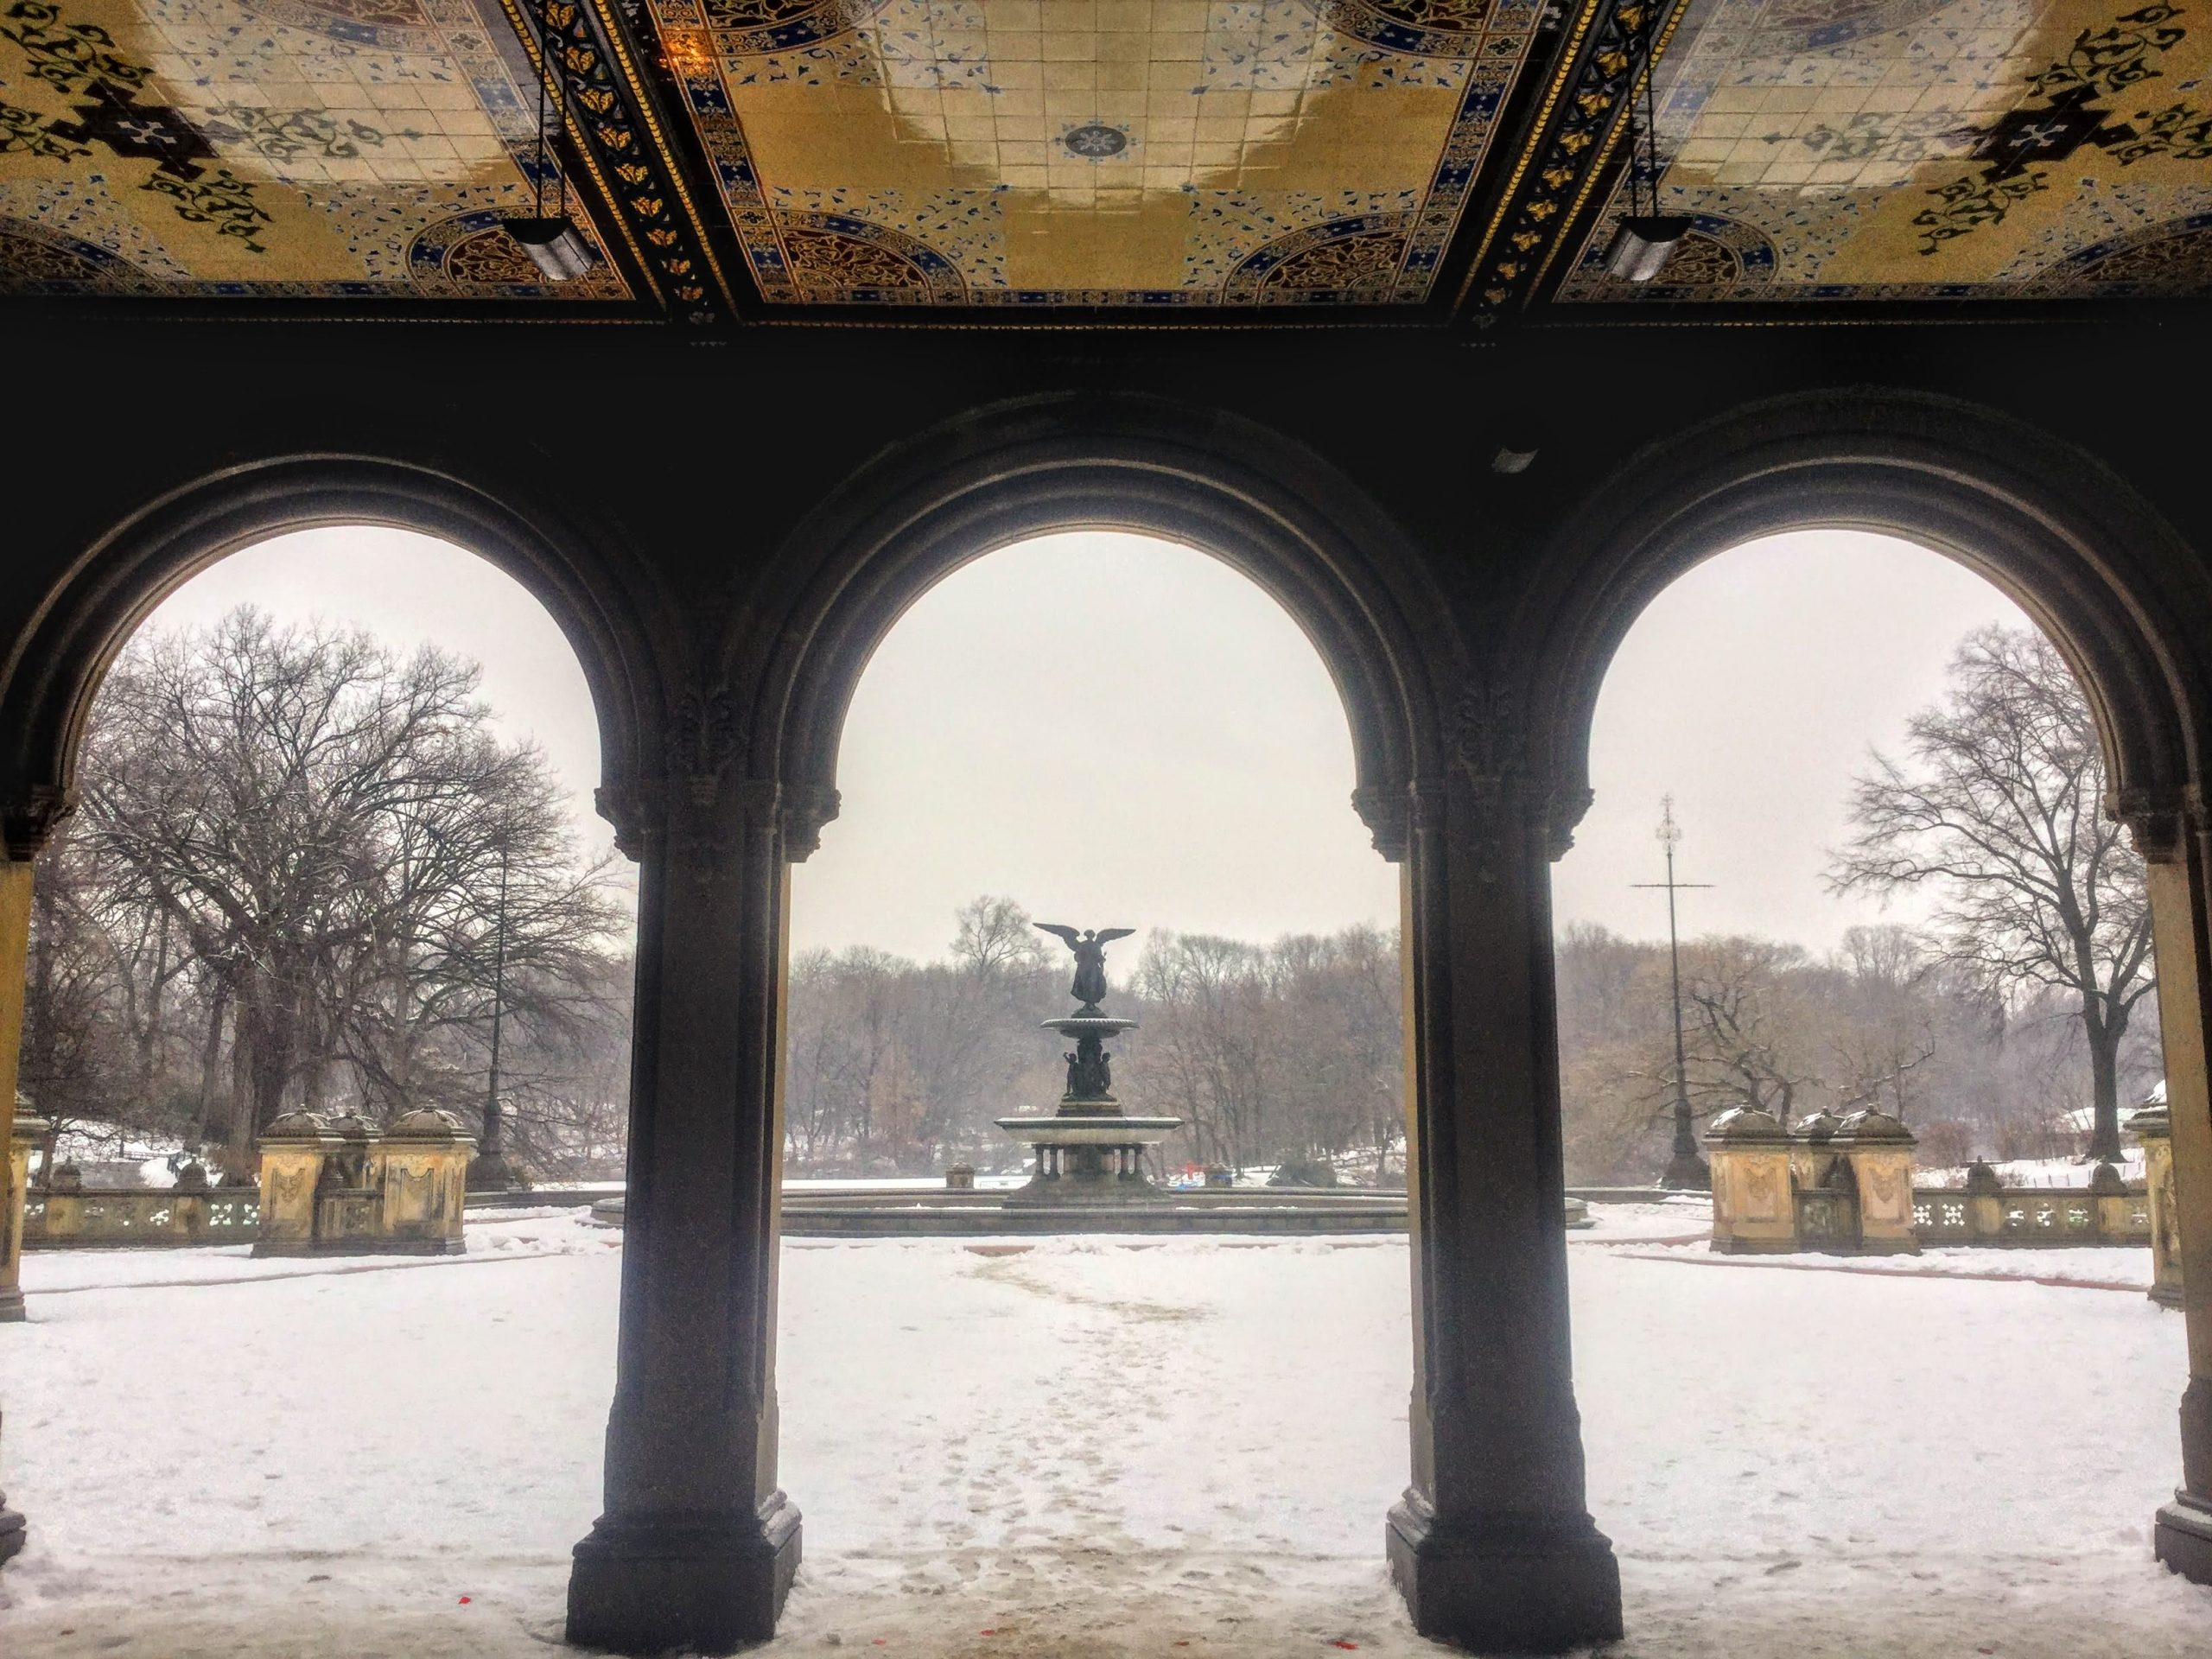 Bethesda Fountain and Terrace in the snow